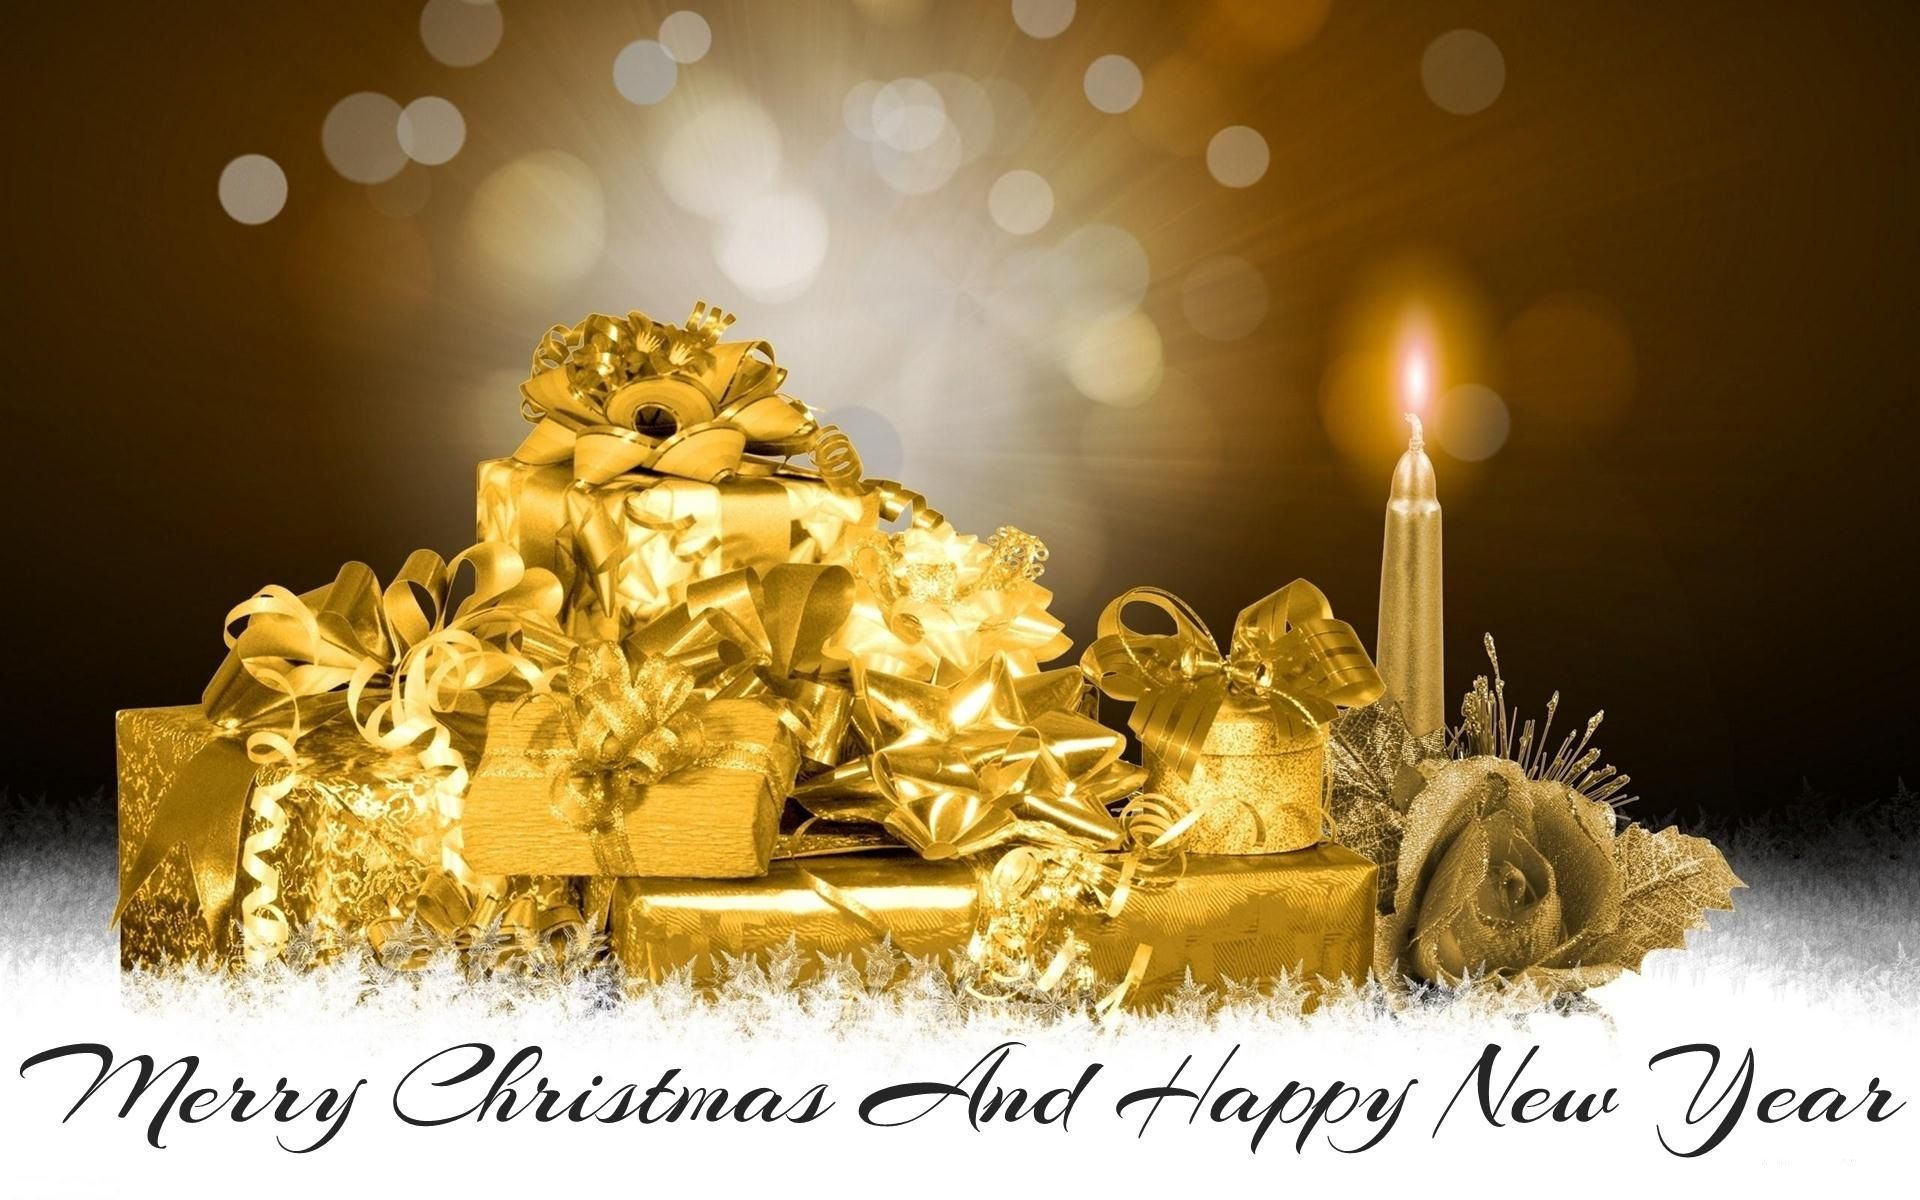 Image For Merry Christmas 2014 And Happy New Year 2015 Wallpaper Download Background